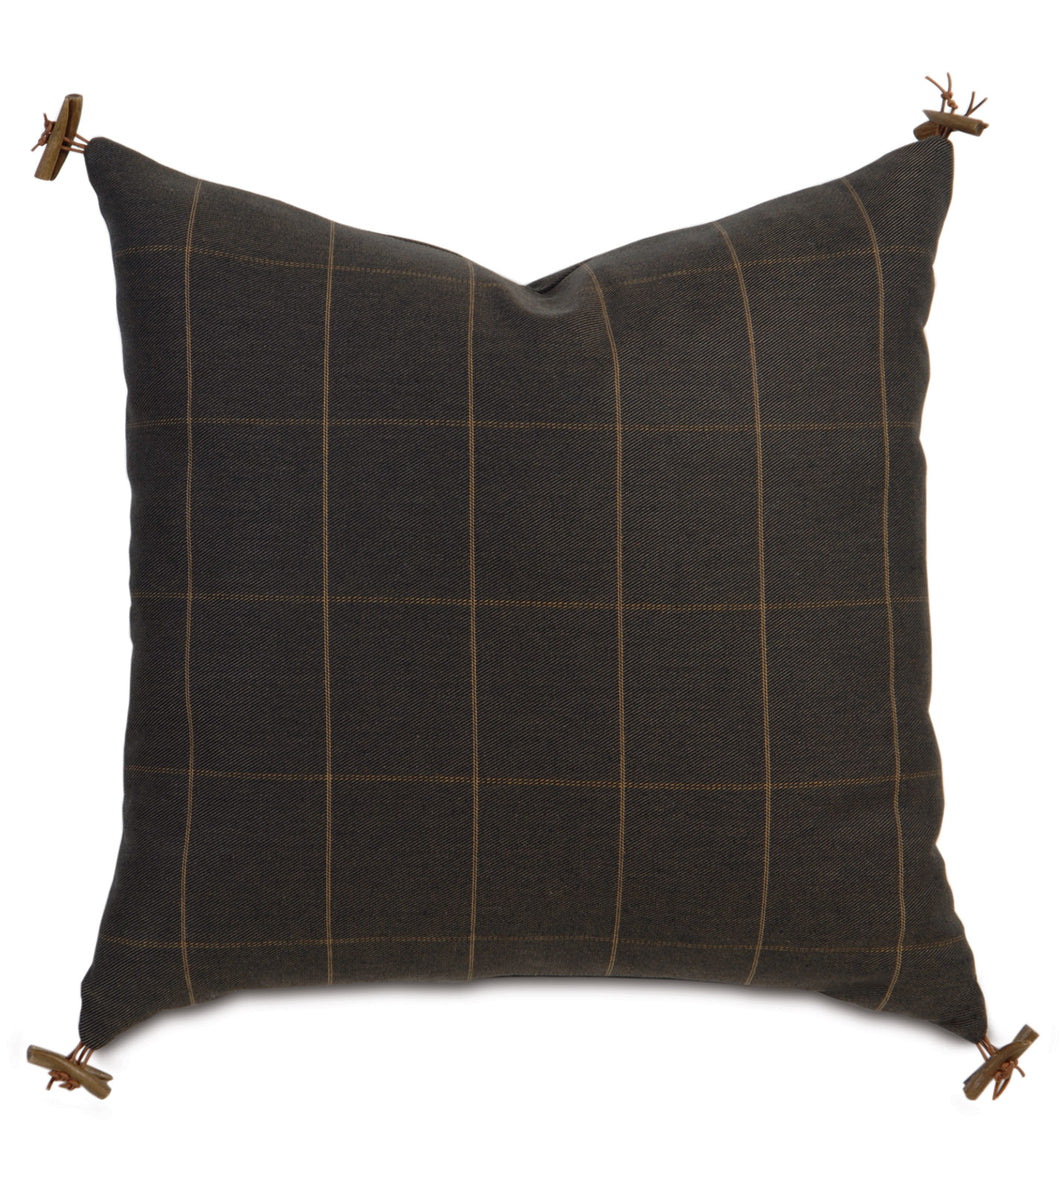 Rustic Lodge Check Accent Pillow in Chocolate Brown 22